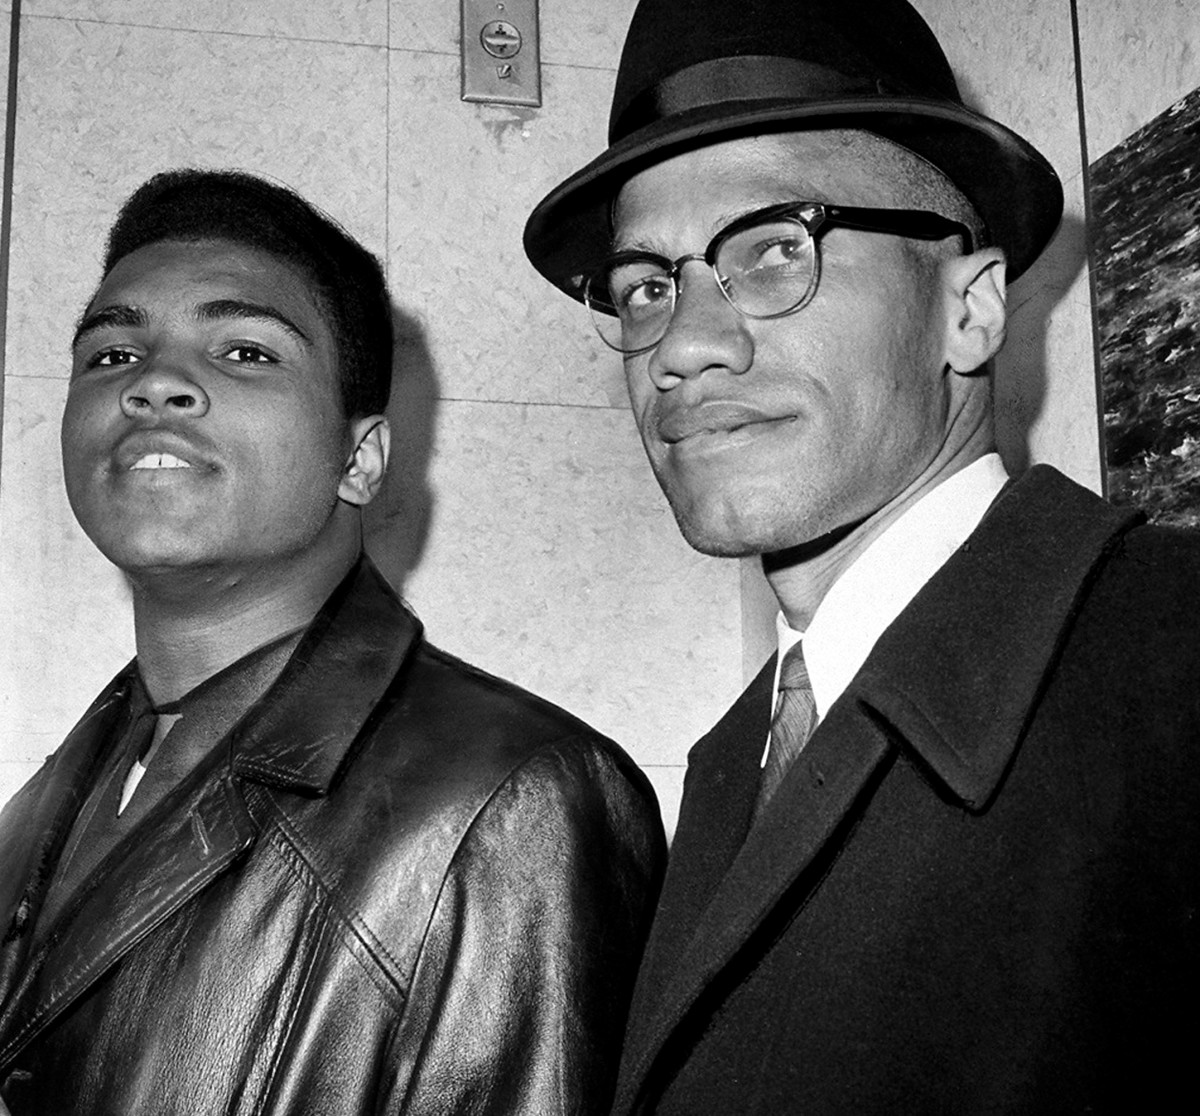 Muhammad Ali stands with fellow Muslim and civil rights activist Malcolm X in New York City on March 2, 1964.